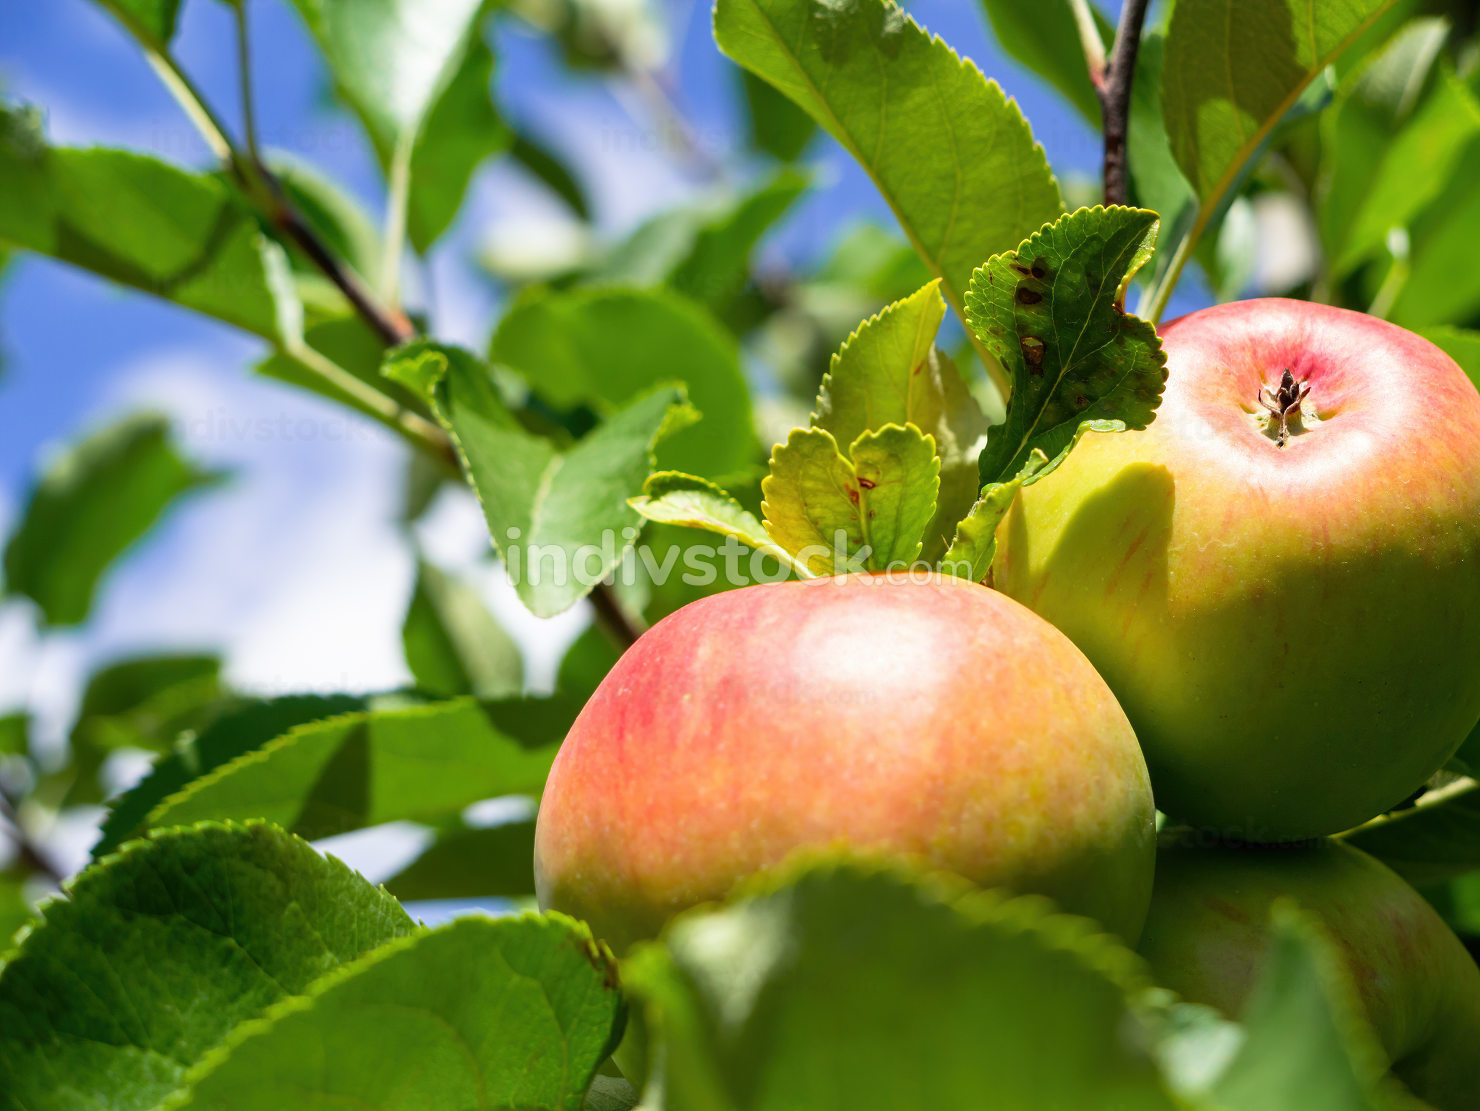 some fresh apples on a tree